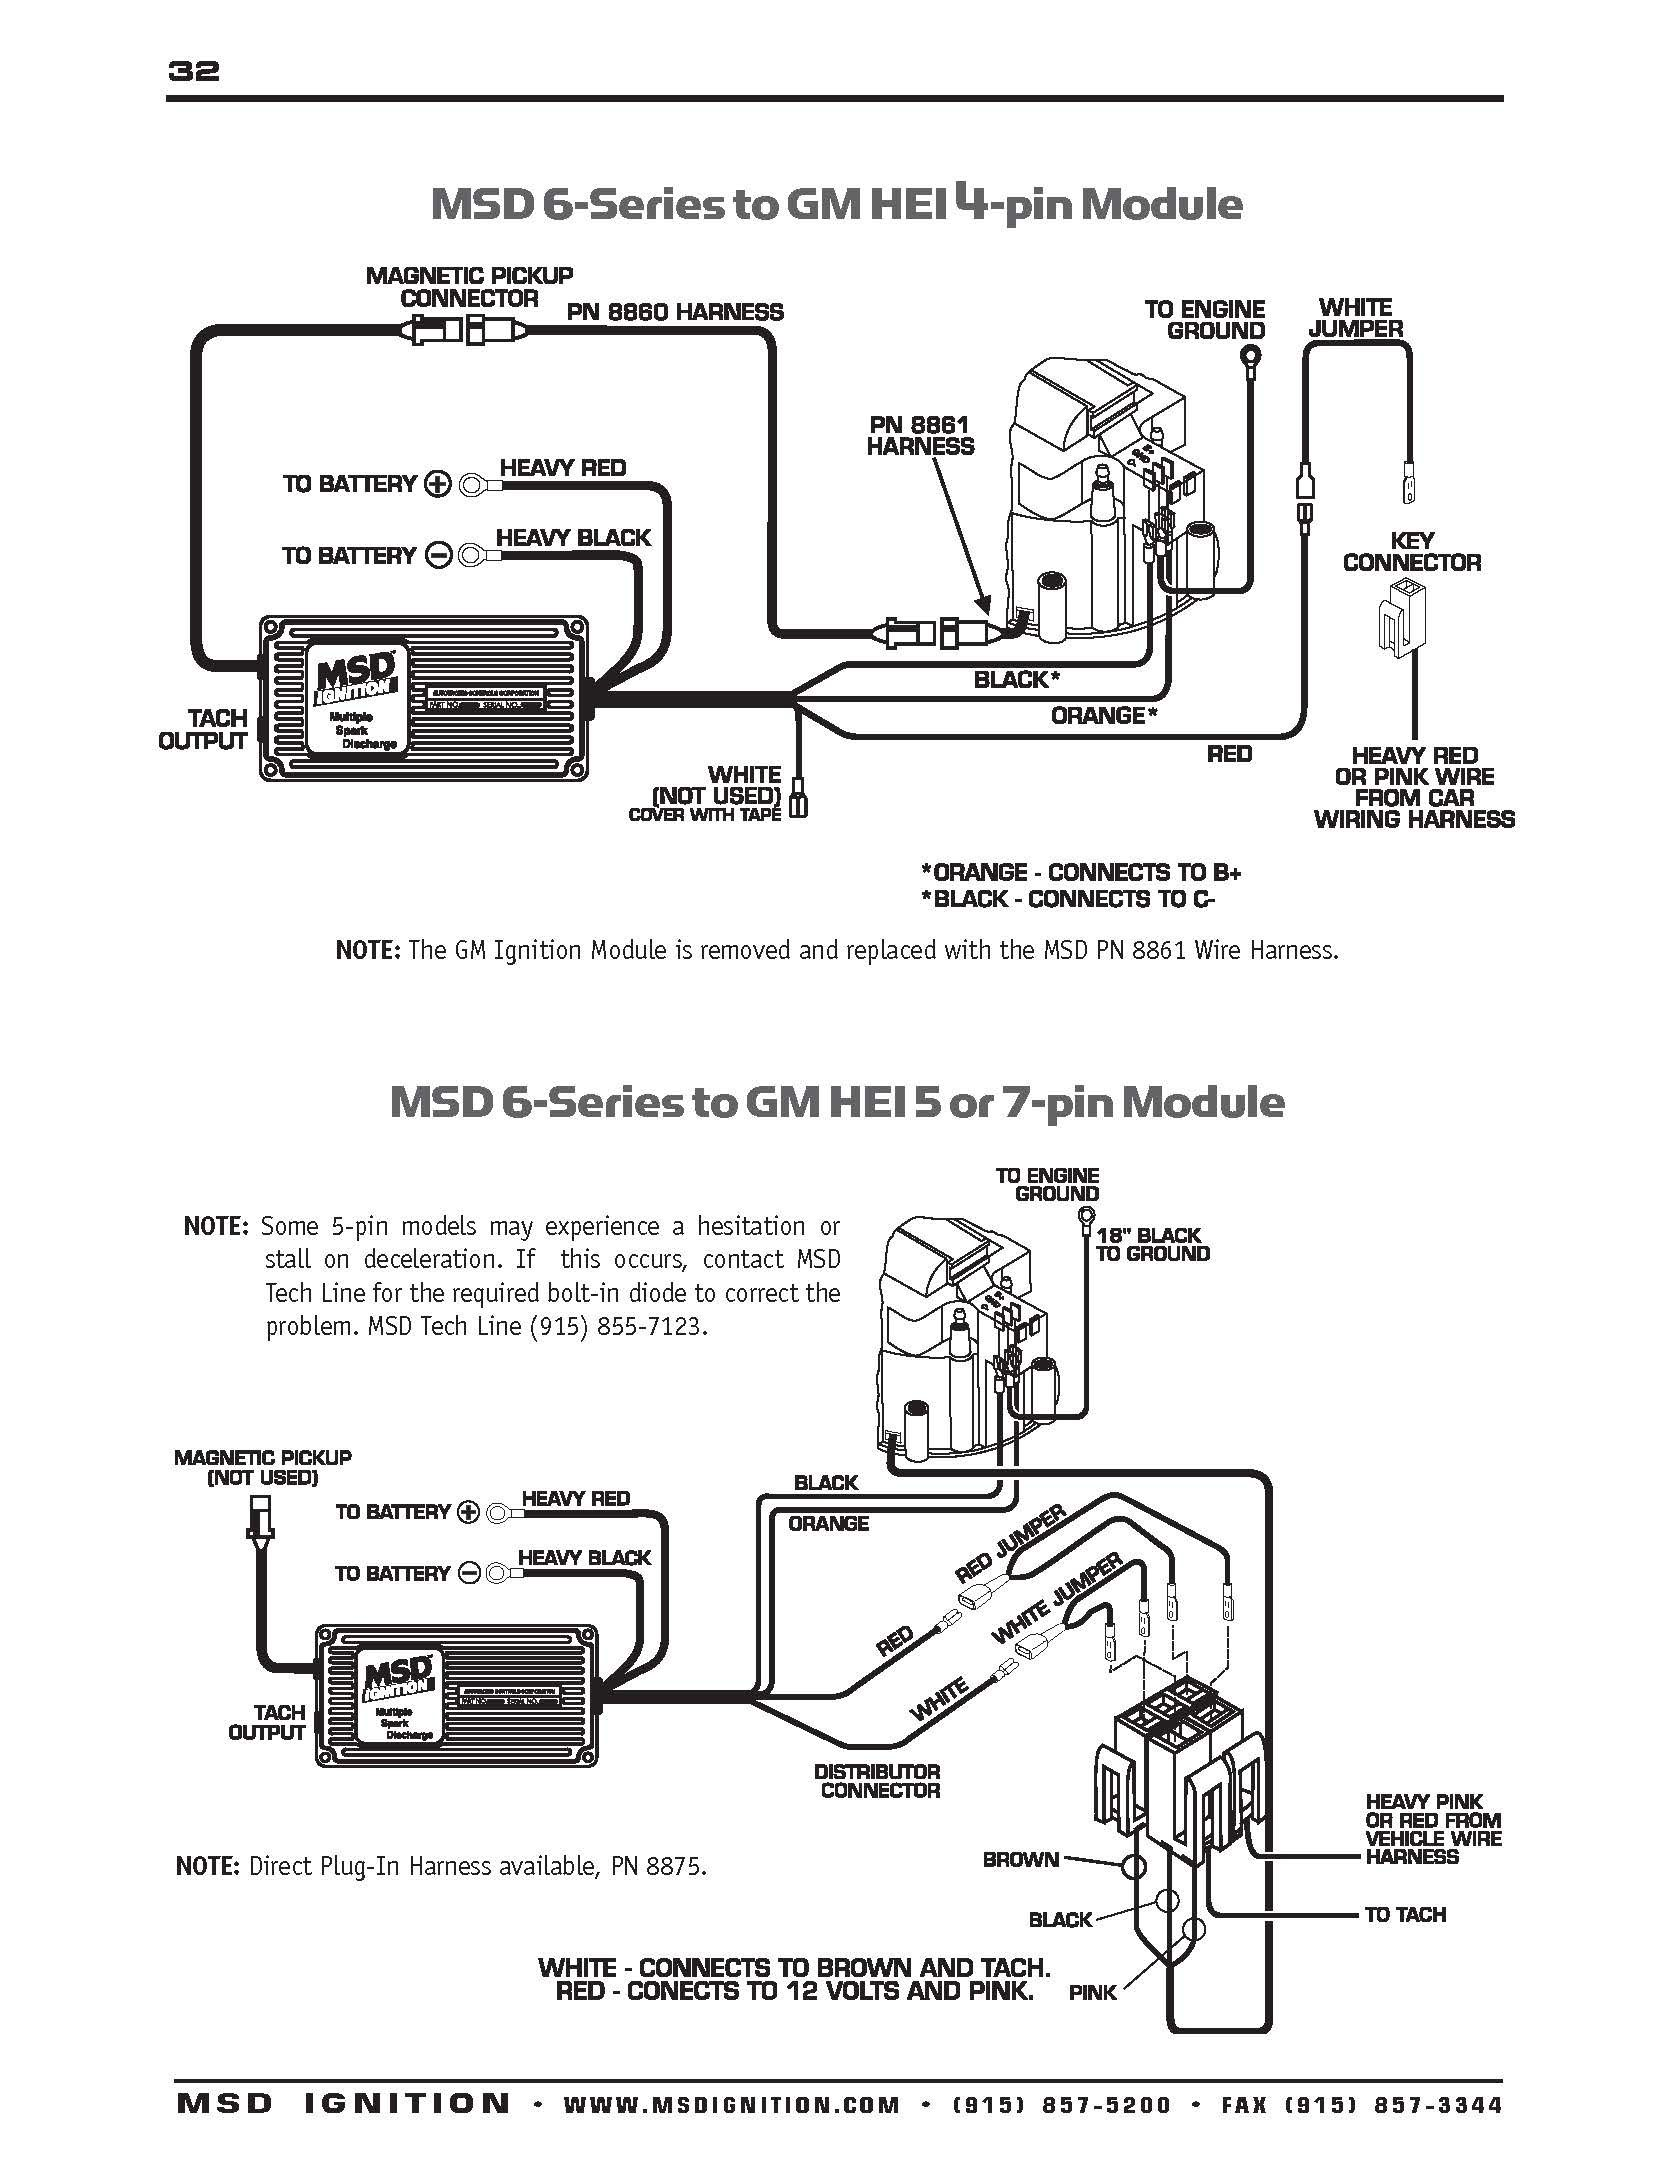 msd ignition wiring diagrams 7531 wiring diagram article reviewmsd ignition wiring diagrams 7531 wiring diagram megamsd [ 1675 x 2175 Pixel ]